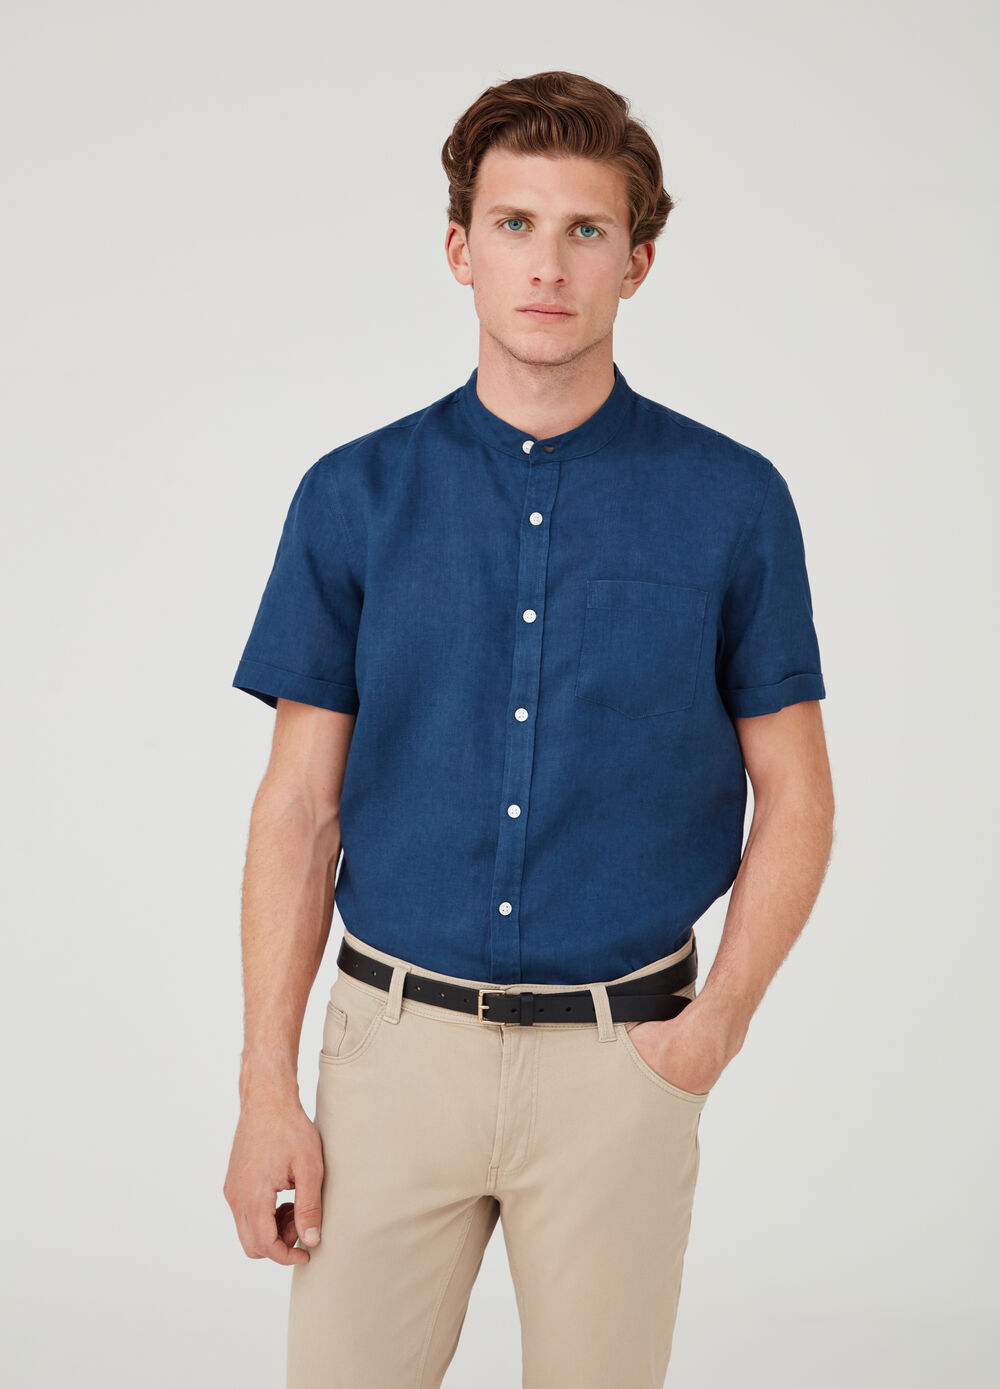 Short-sleeved shirt with Mandarin collar